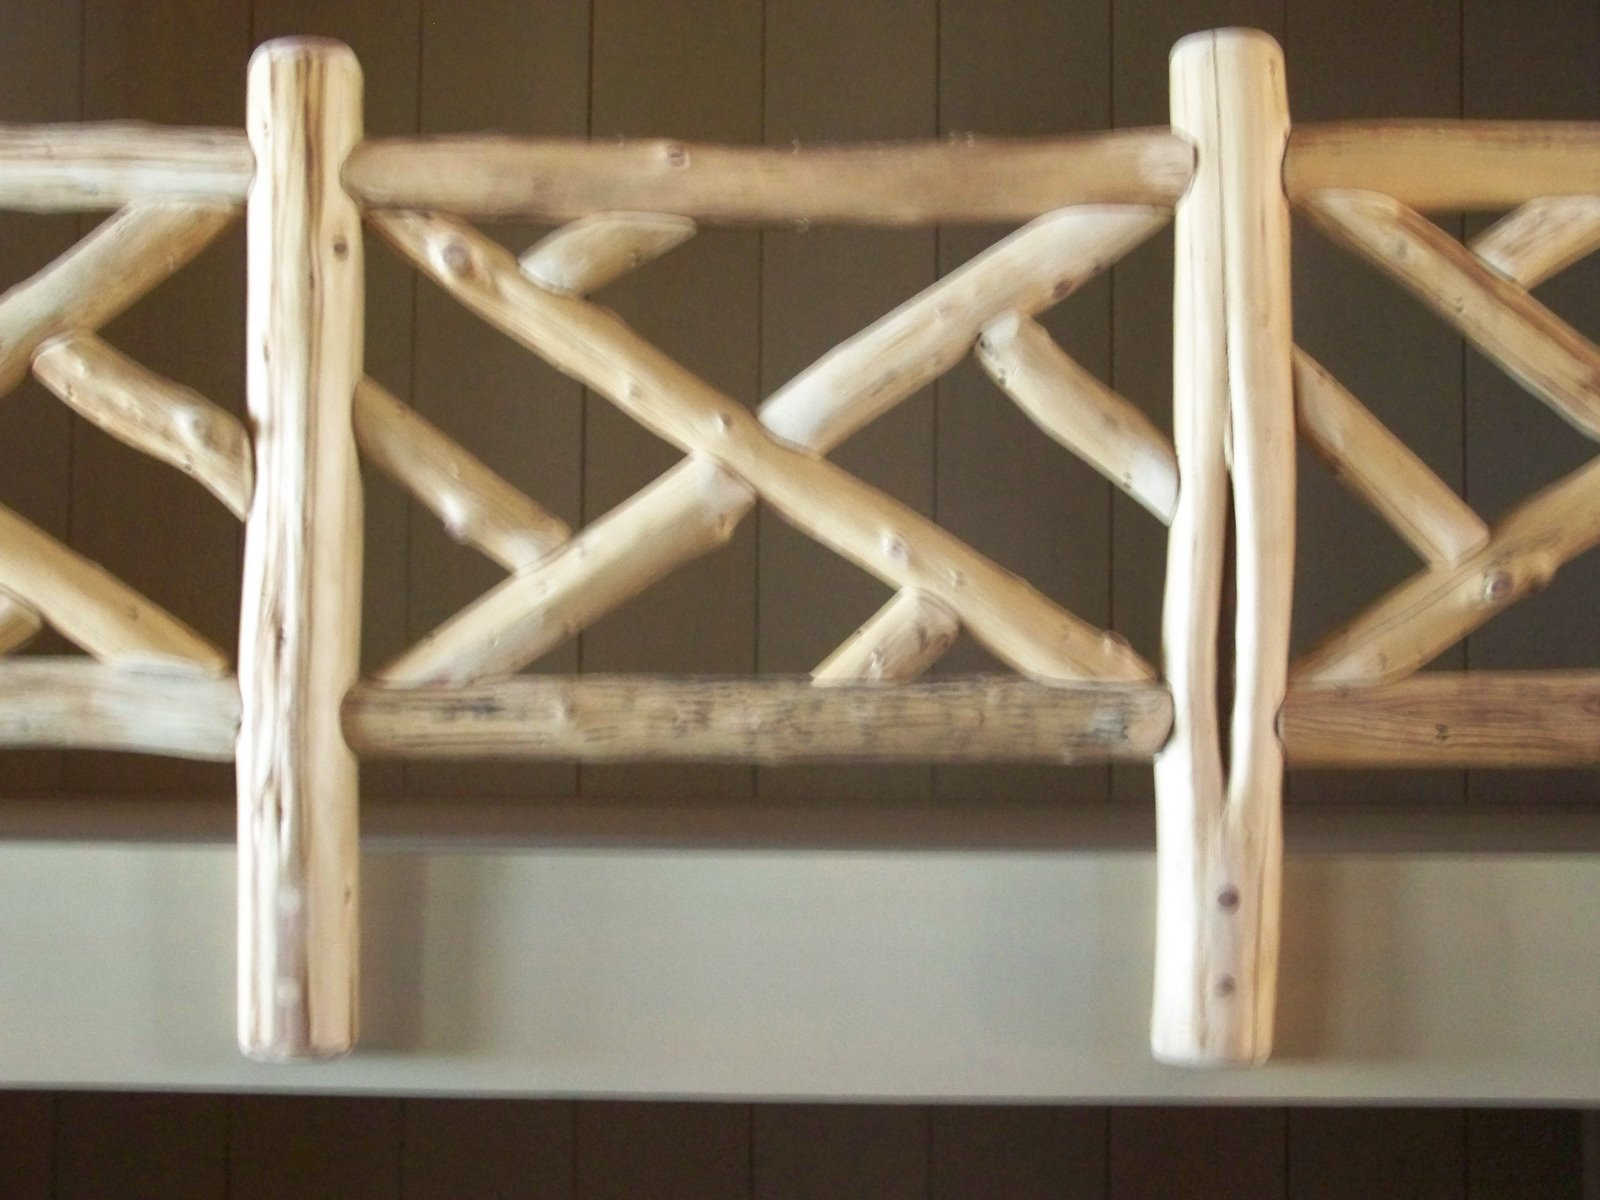 bunk bed close up